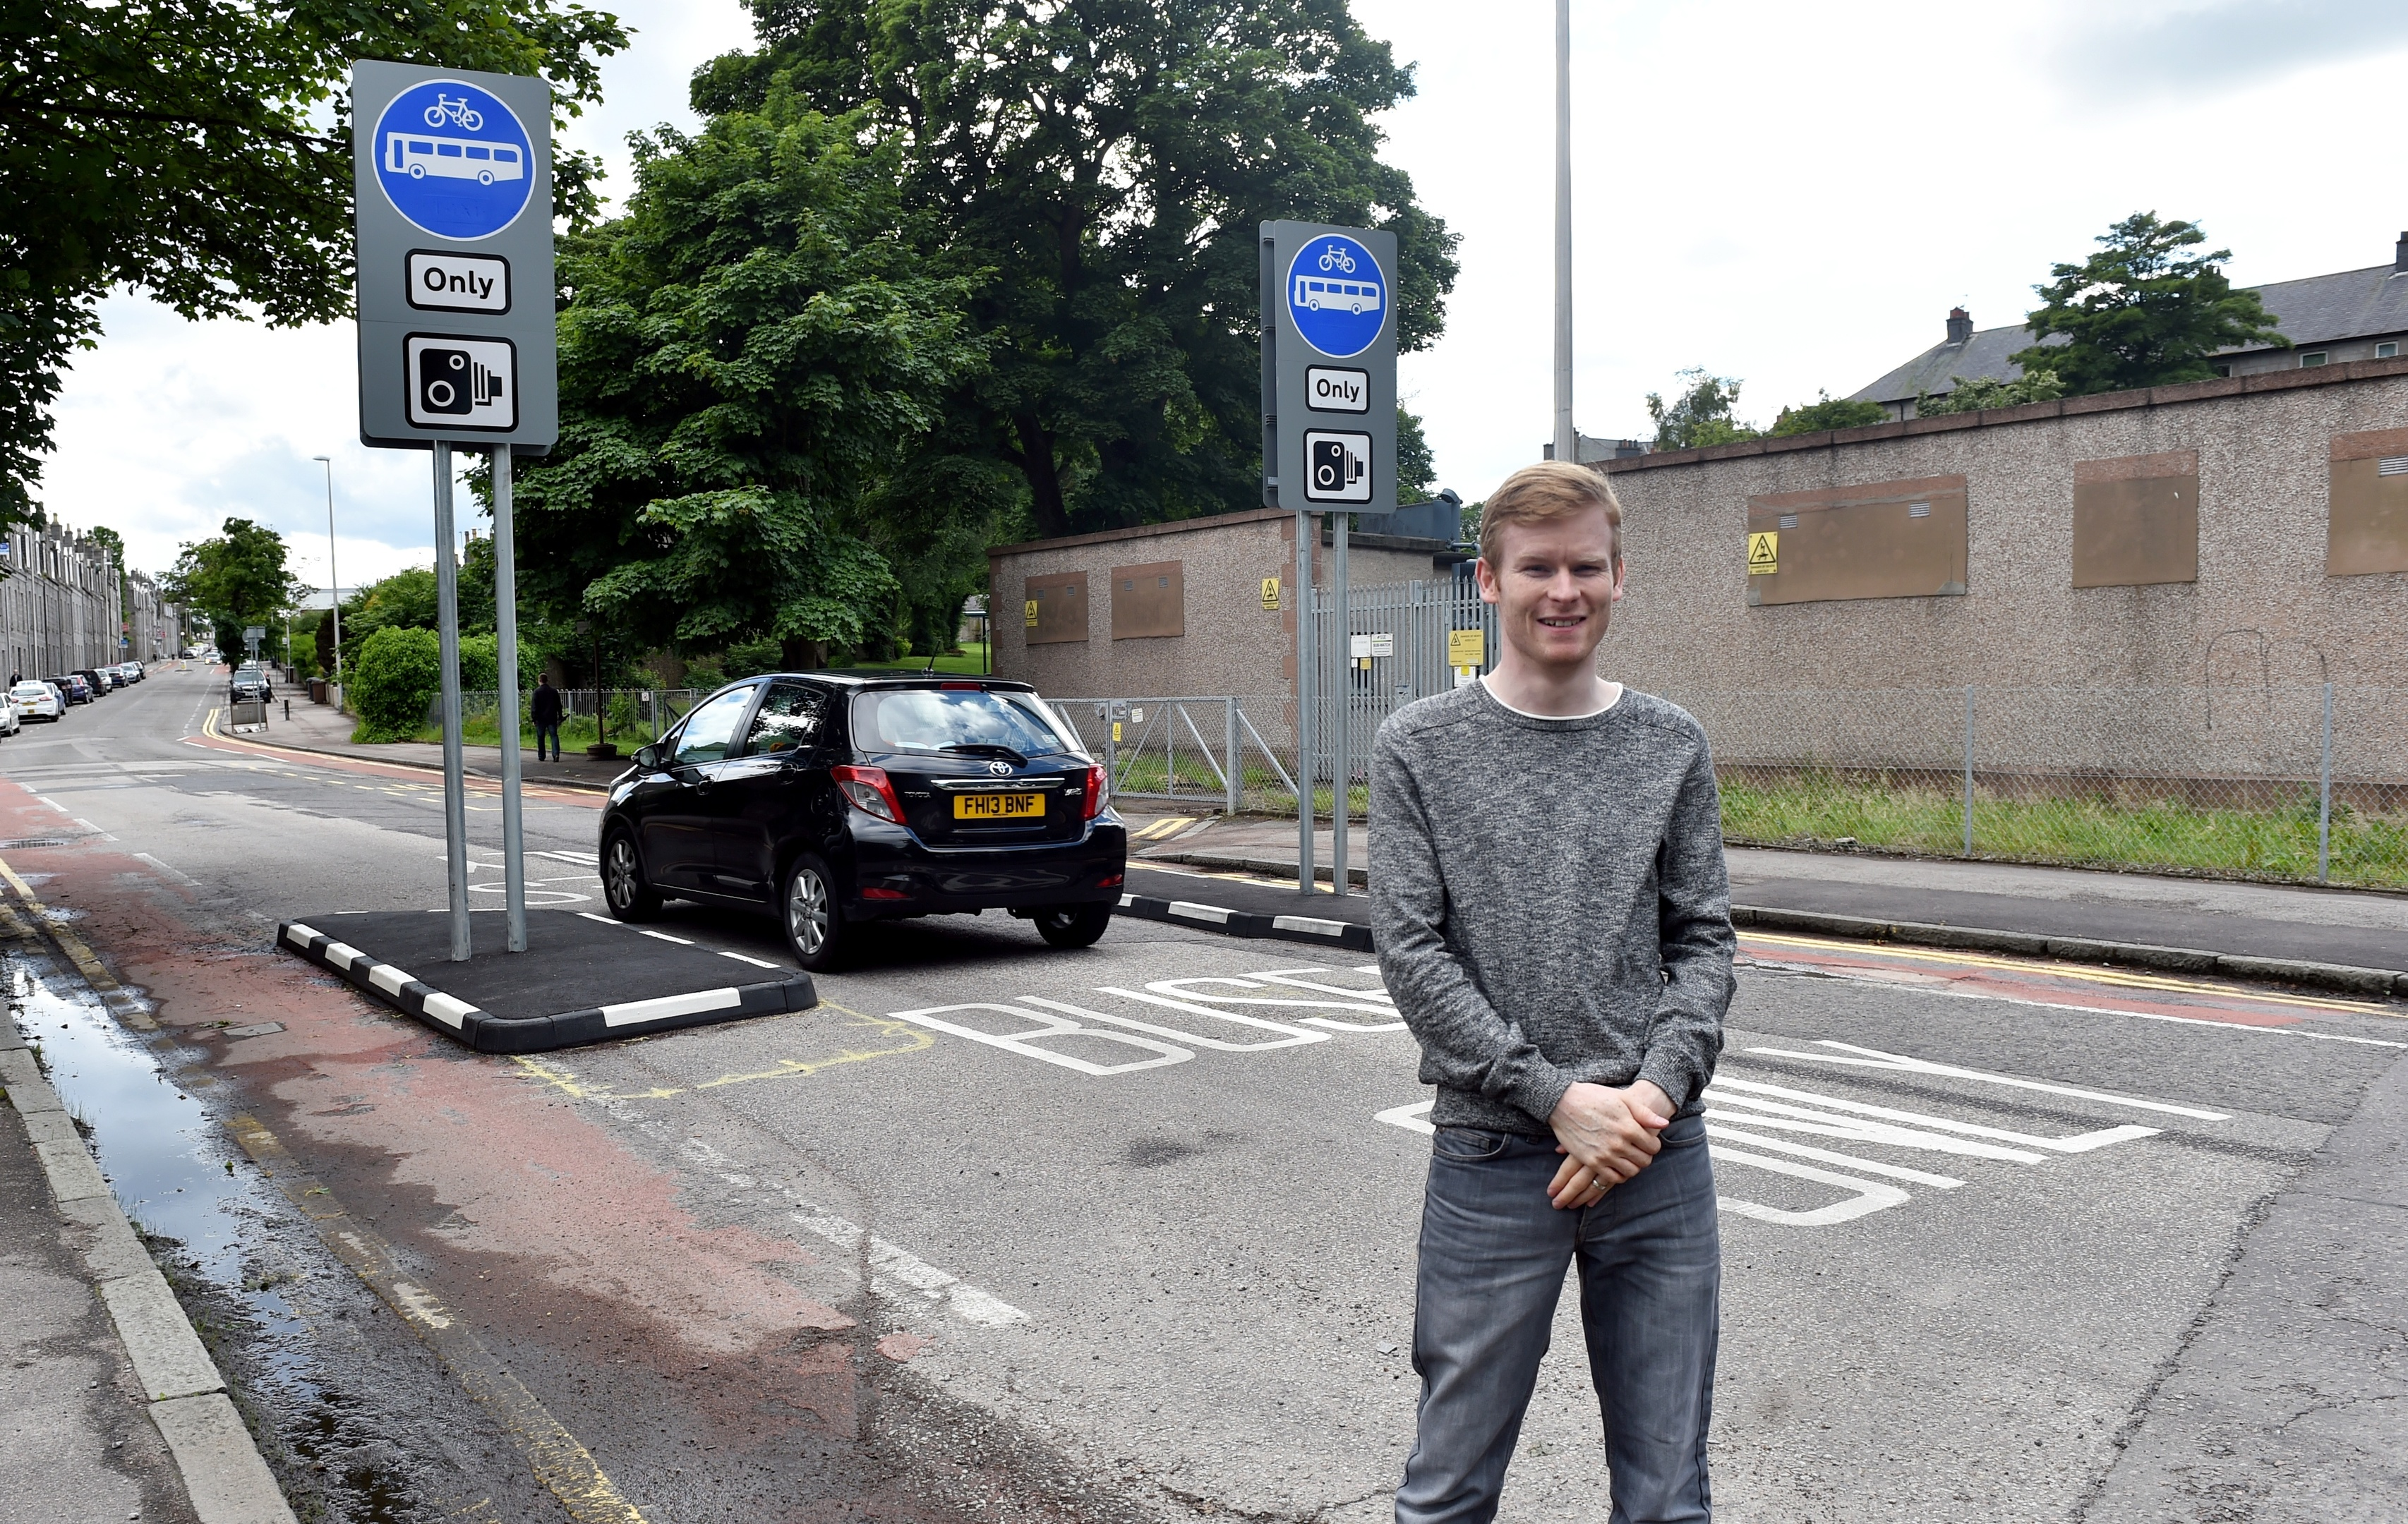 Cllr Ross Grant at the bus gate on Bedford Road.